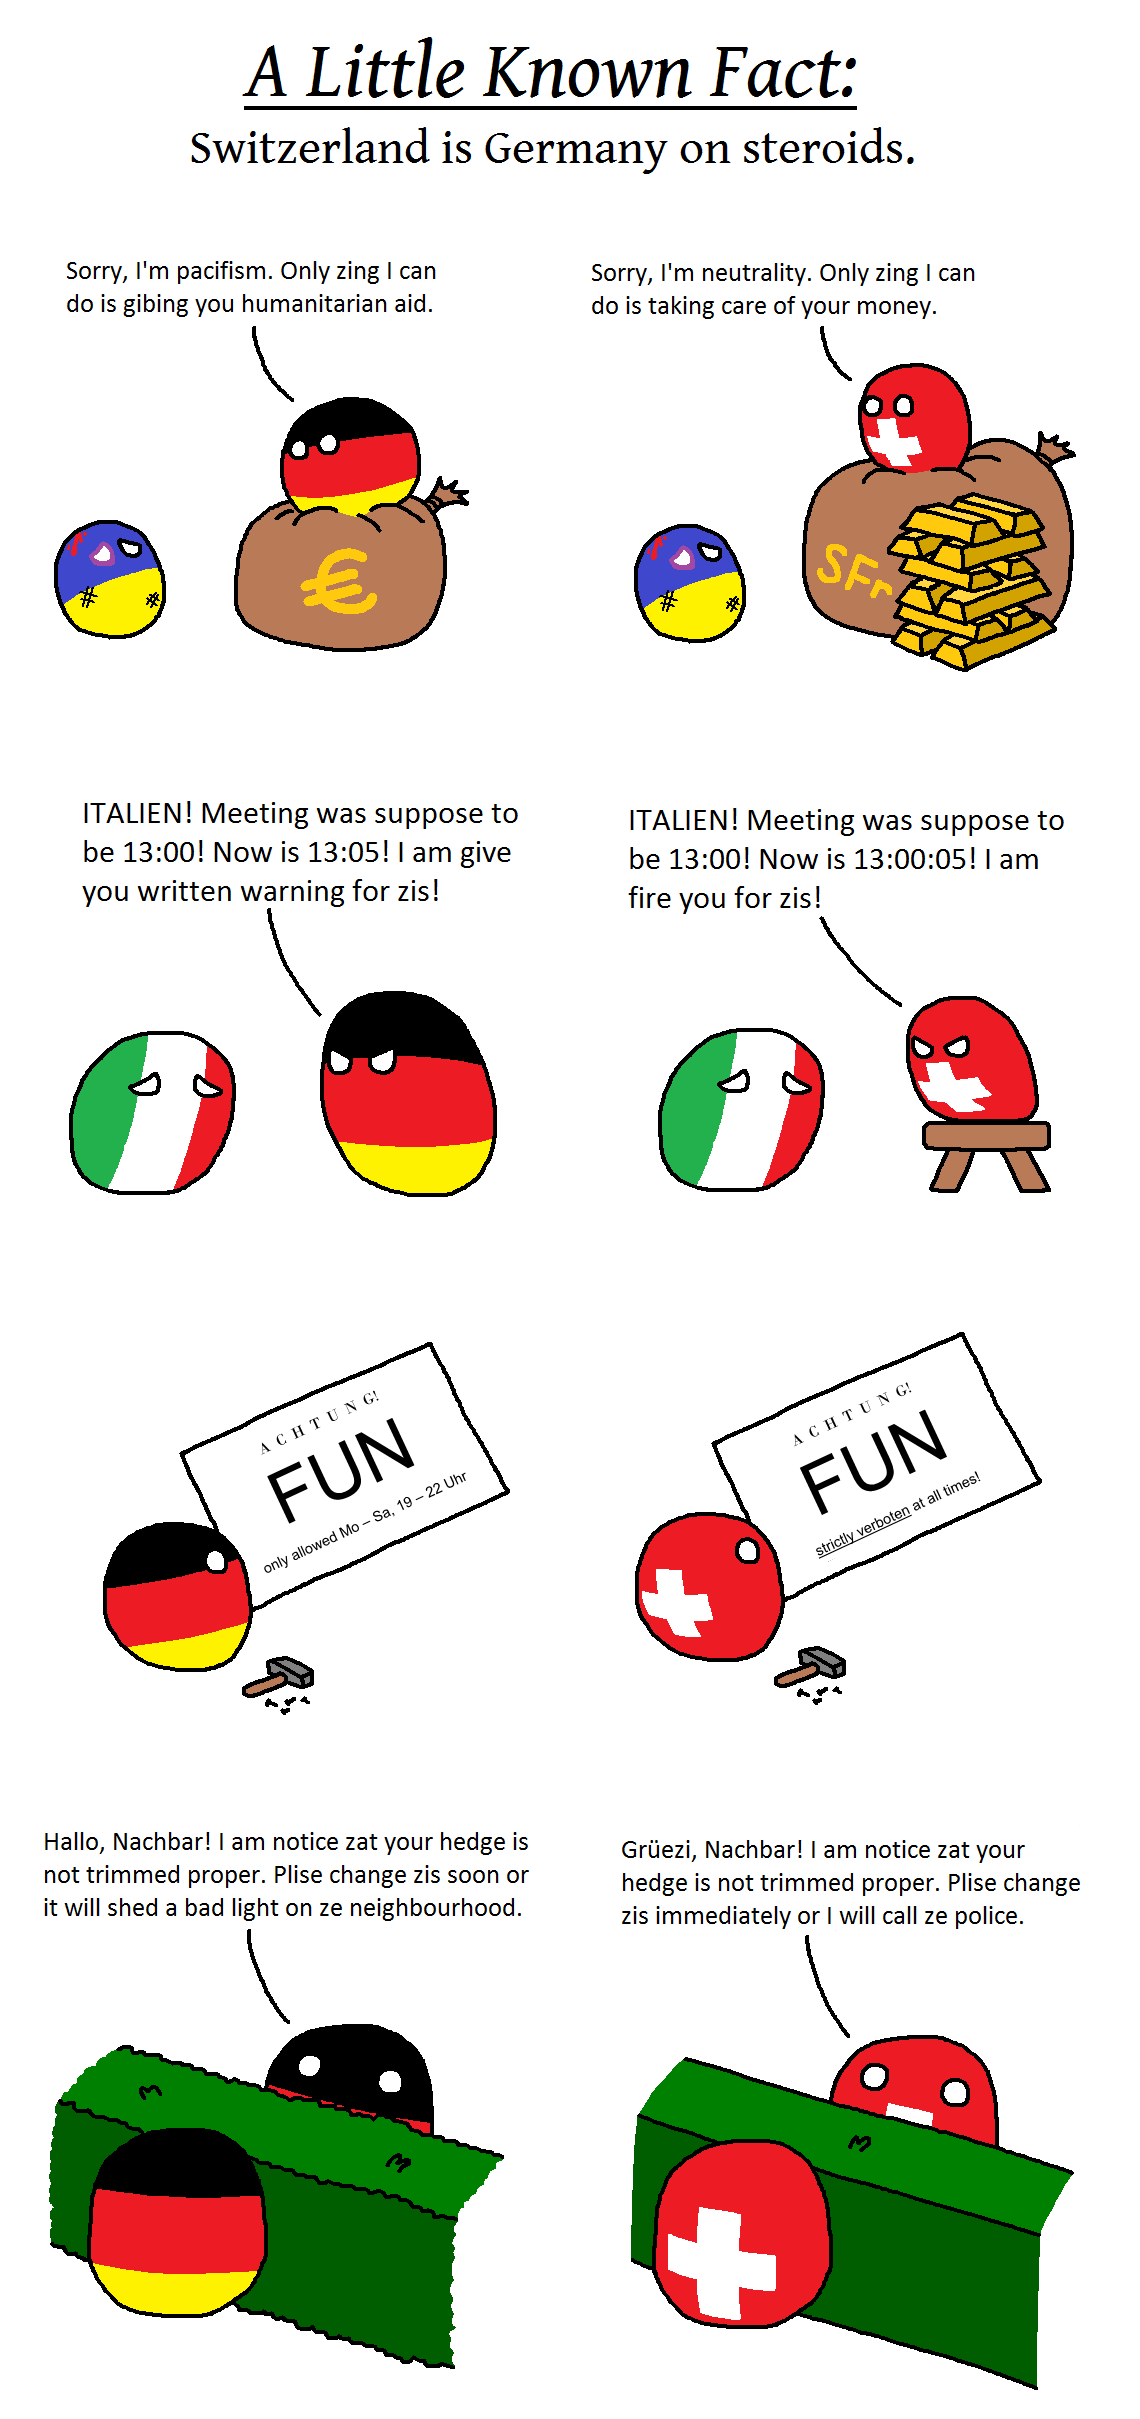 Germany on Steroids